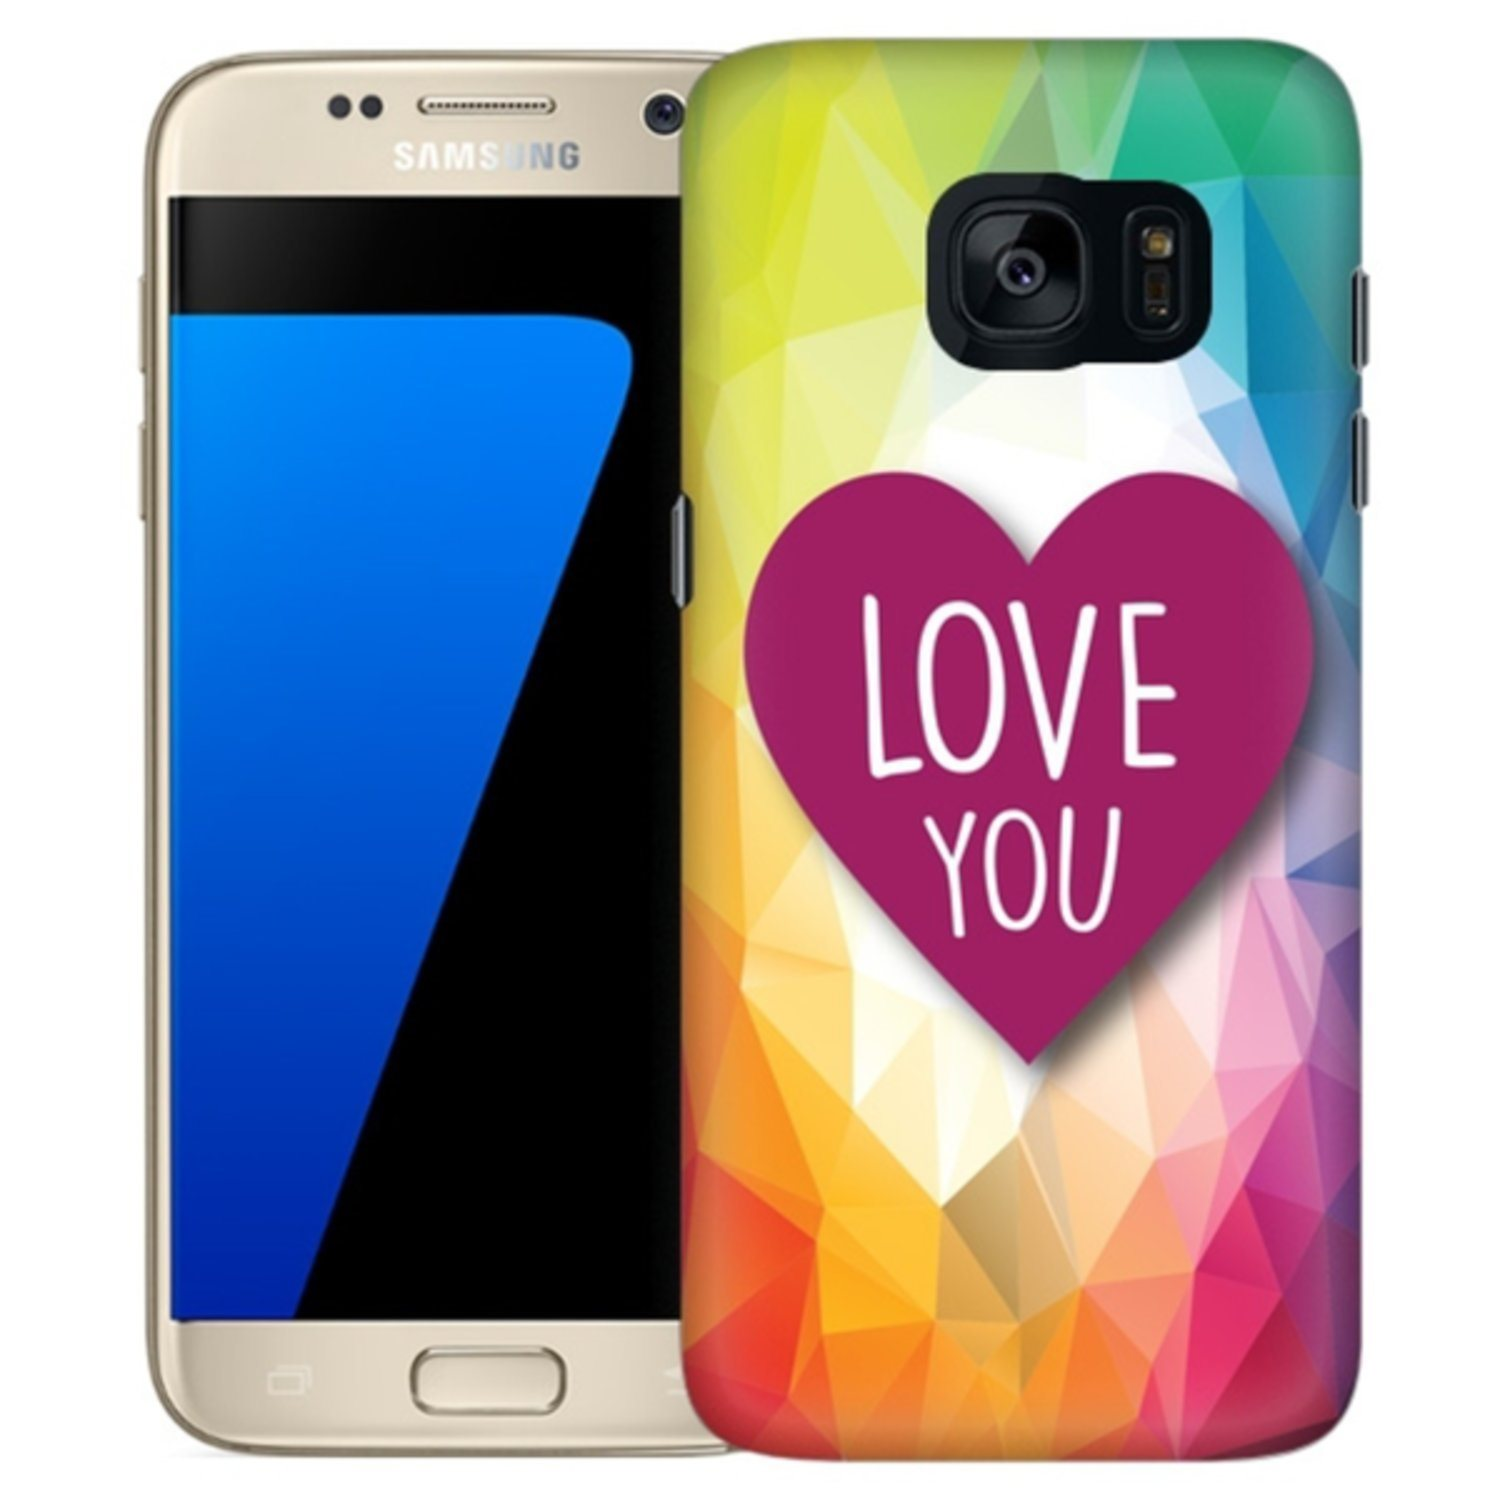 Samsung Galaxy S7 Edge Skal Love You.. (309737370) ᐈ Hobbyprylar på ... 5391cad42e1e1